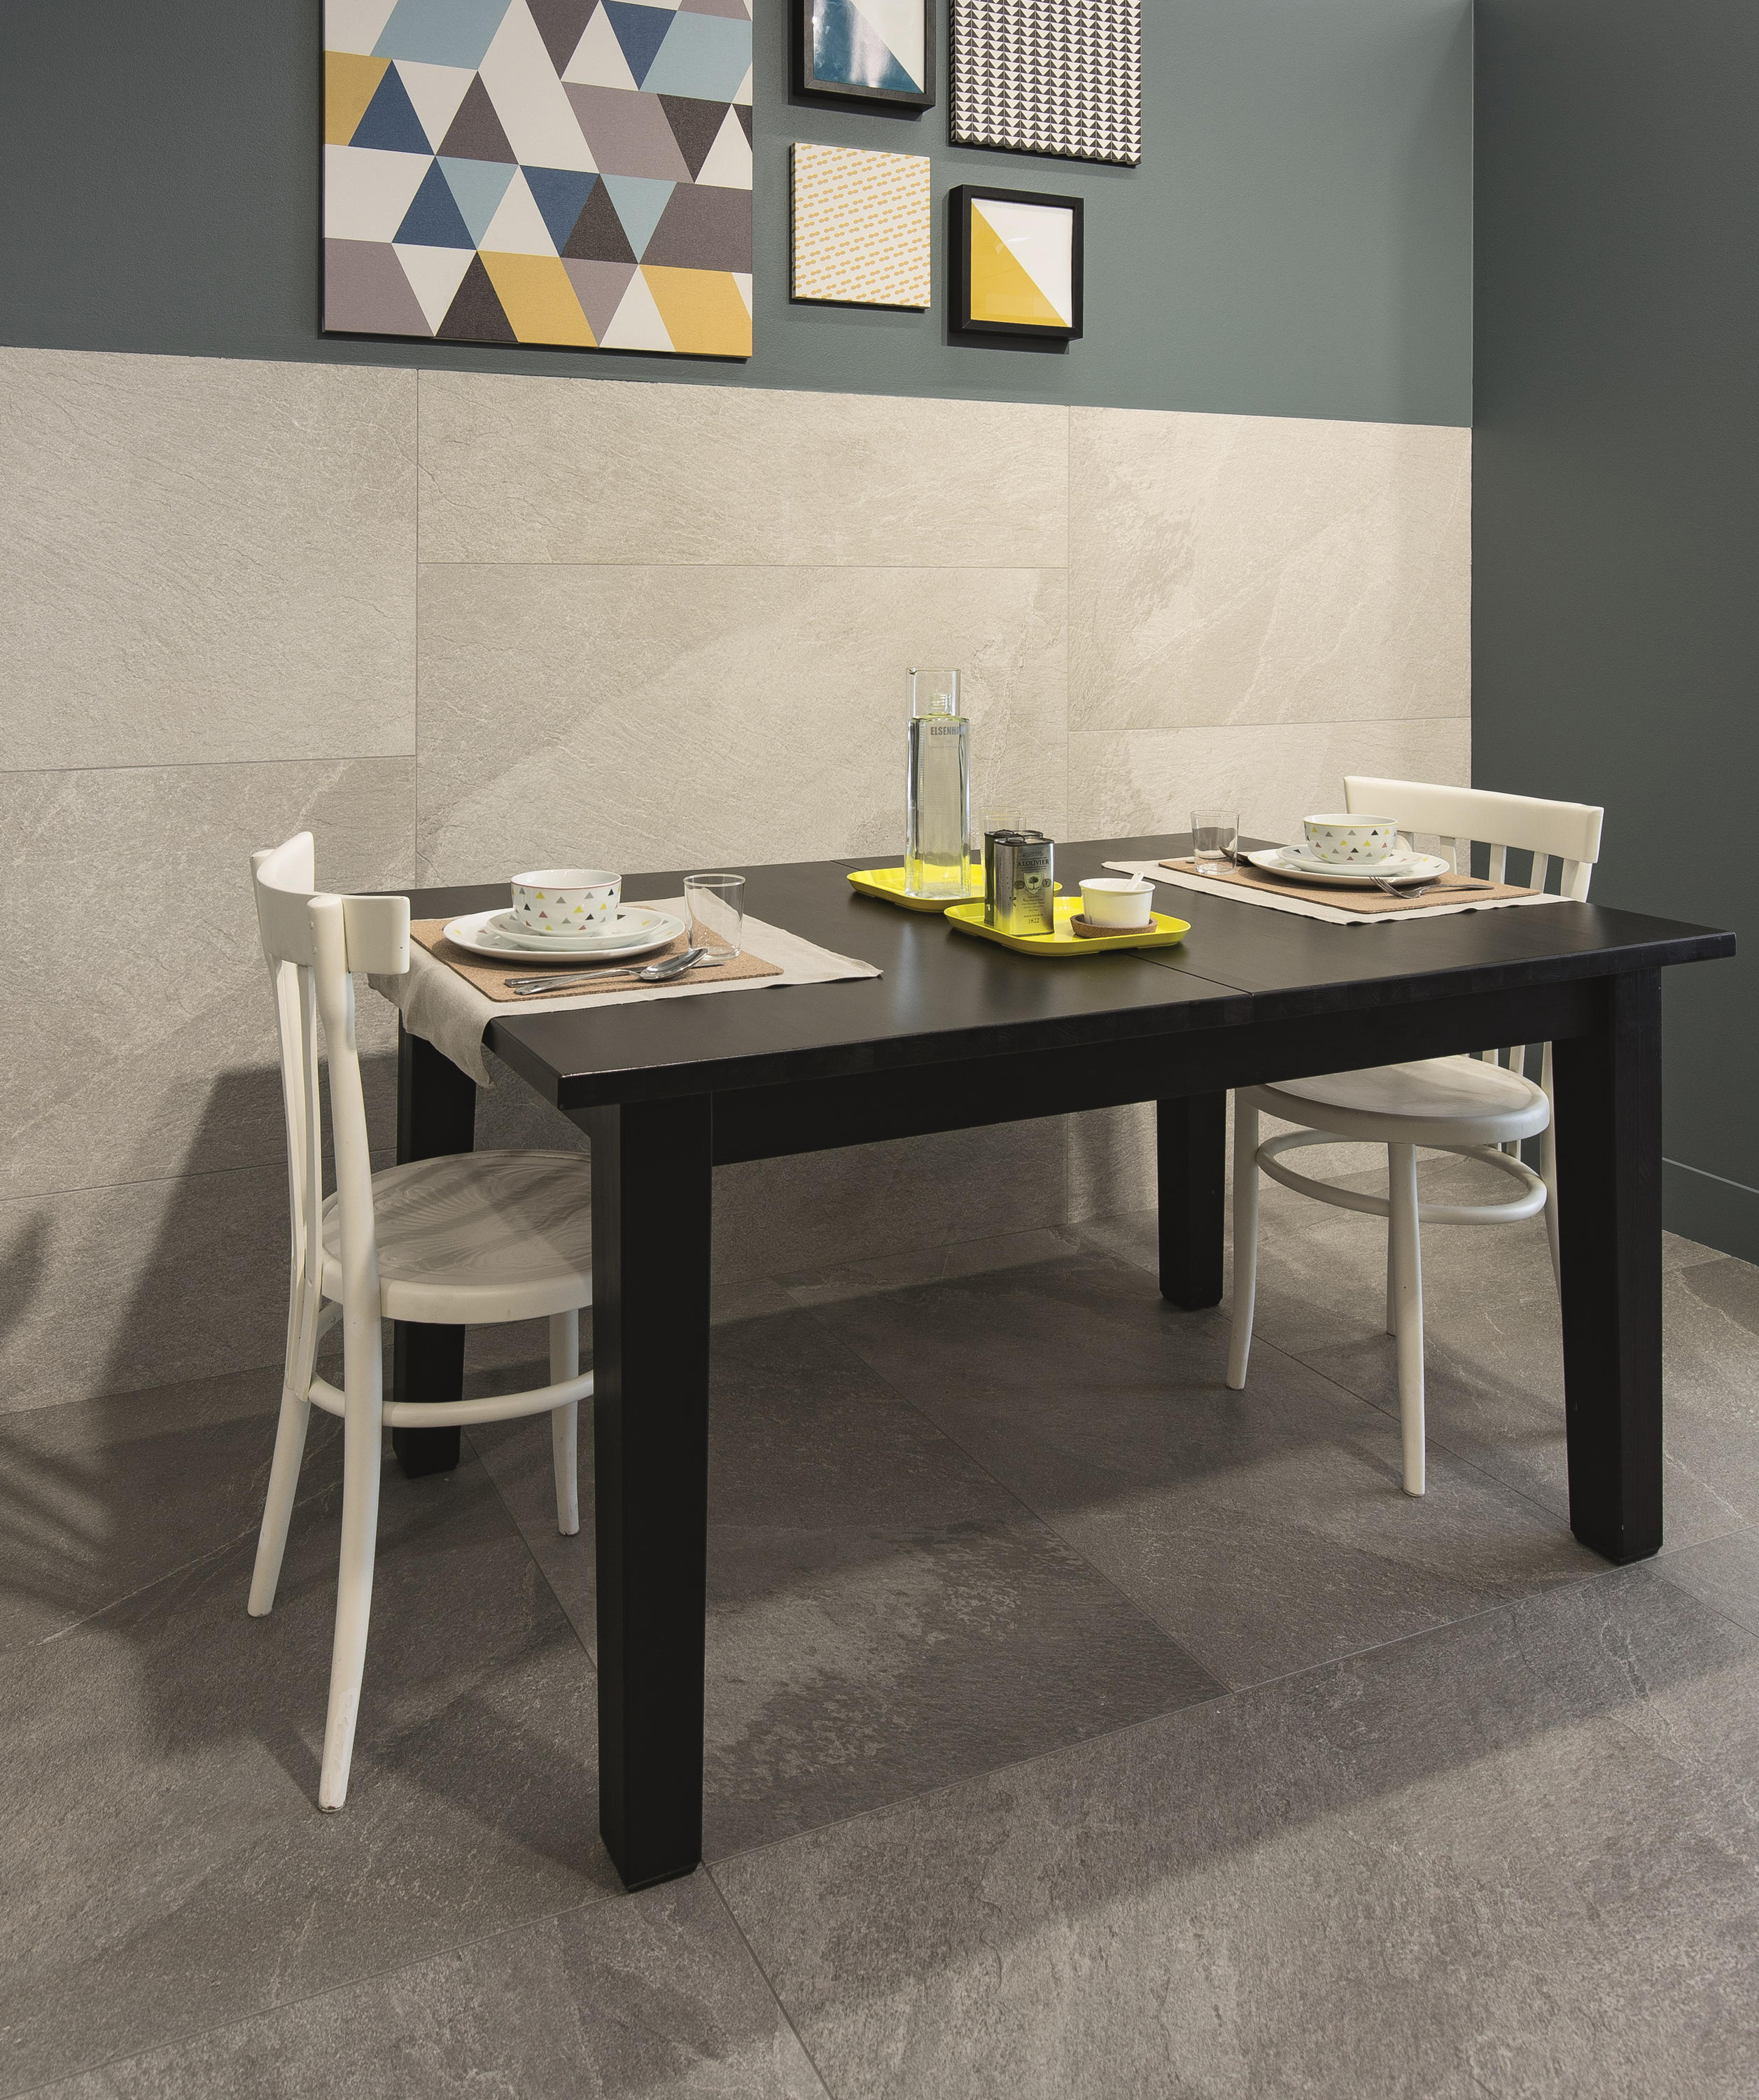 Natural stone white fossil floor tiles from cerim by florim natural stone white fossil by cerim by florim floor tiles dailygadgetfo Image collections